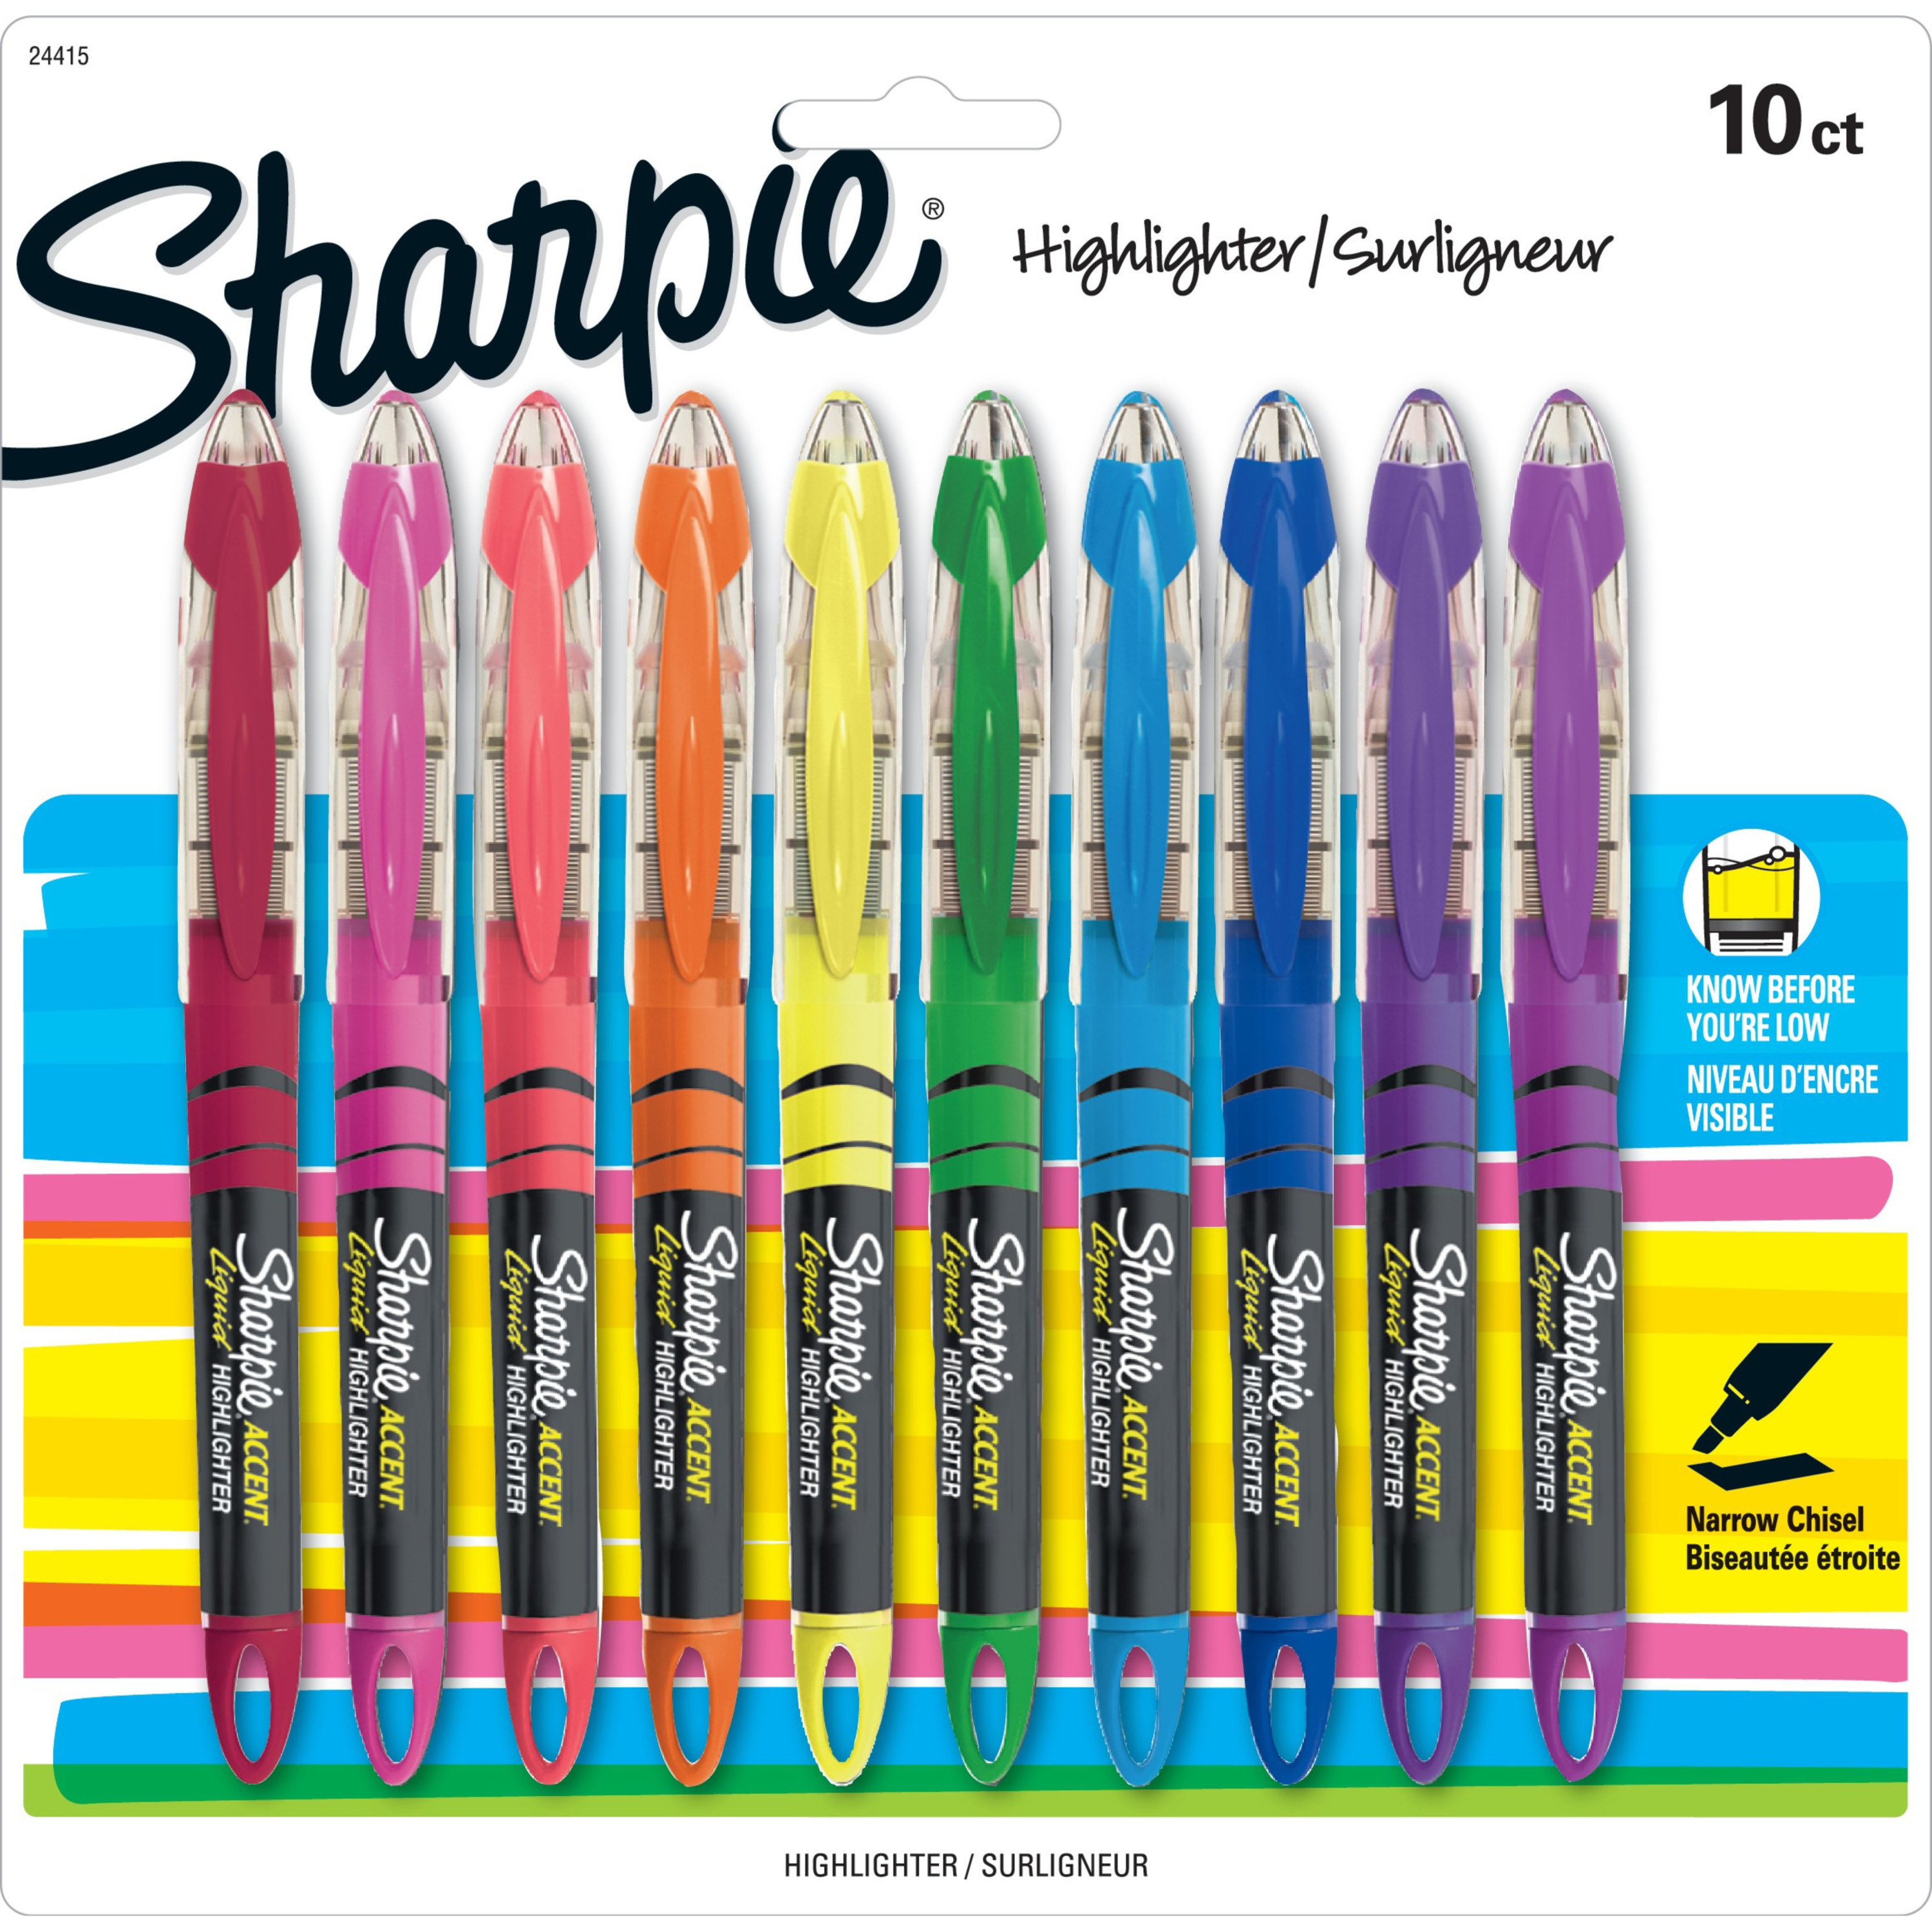 The sharpies